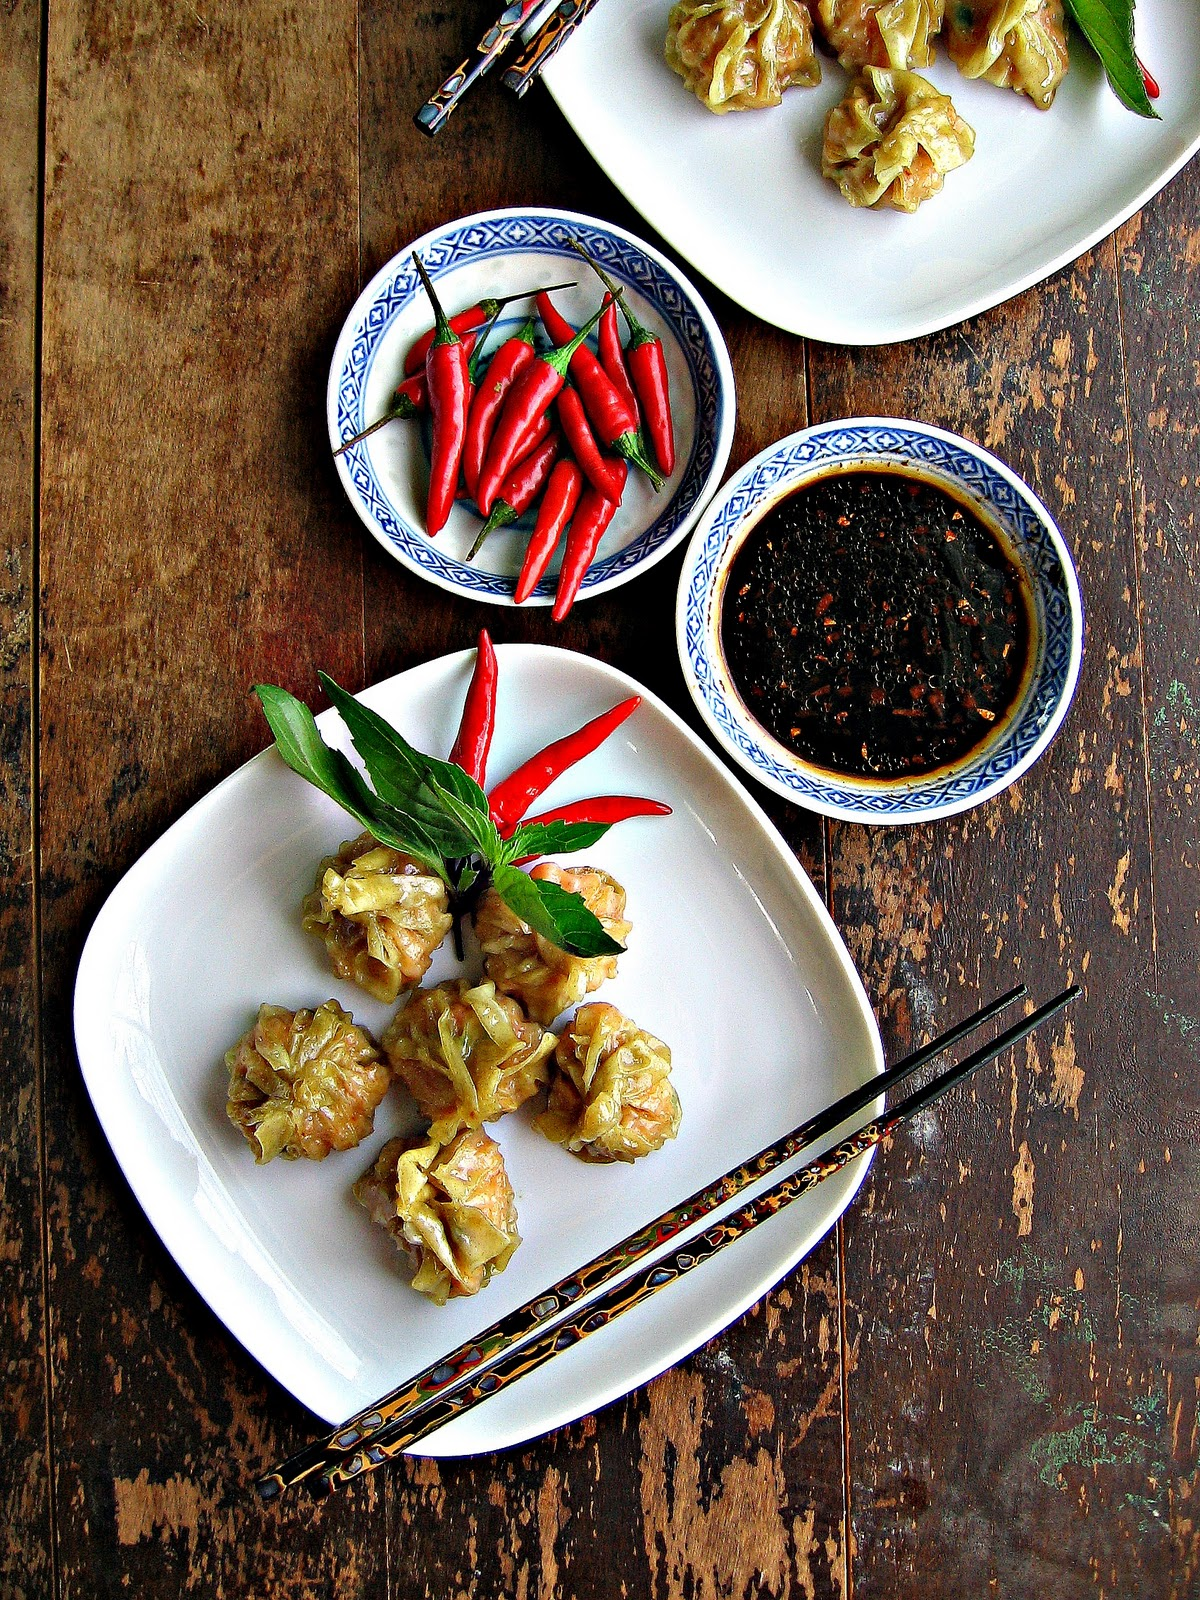 sweetsugarbean: Easy Appie: Red Curry Shrimp Dumplings